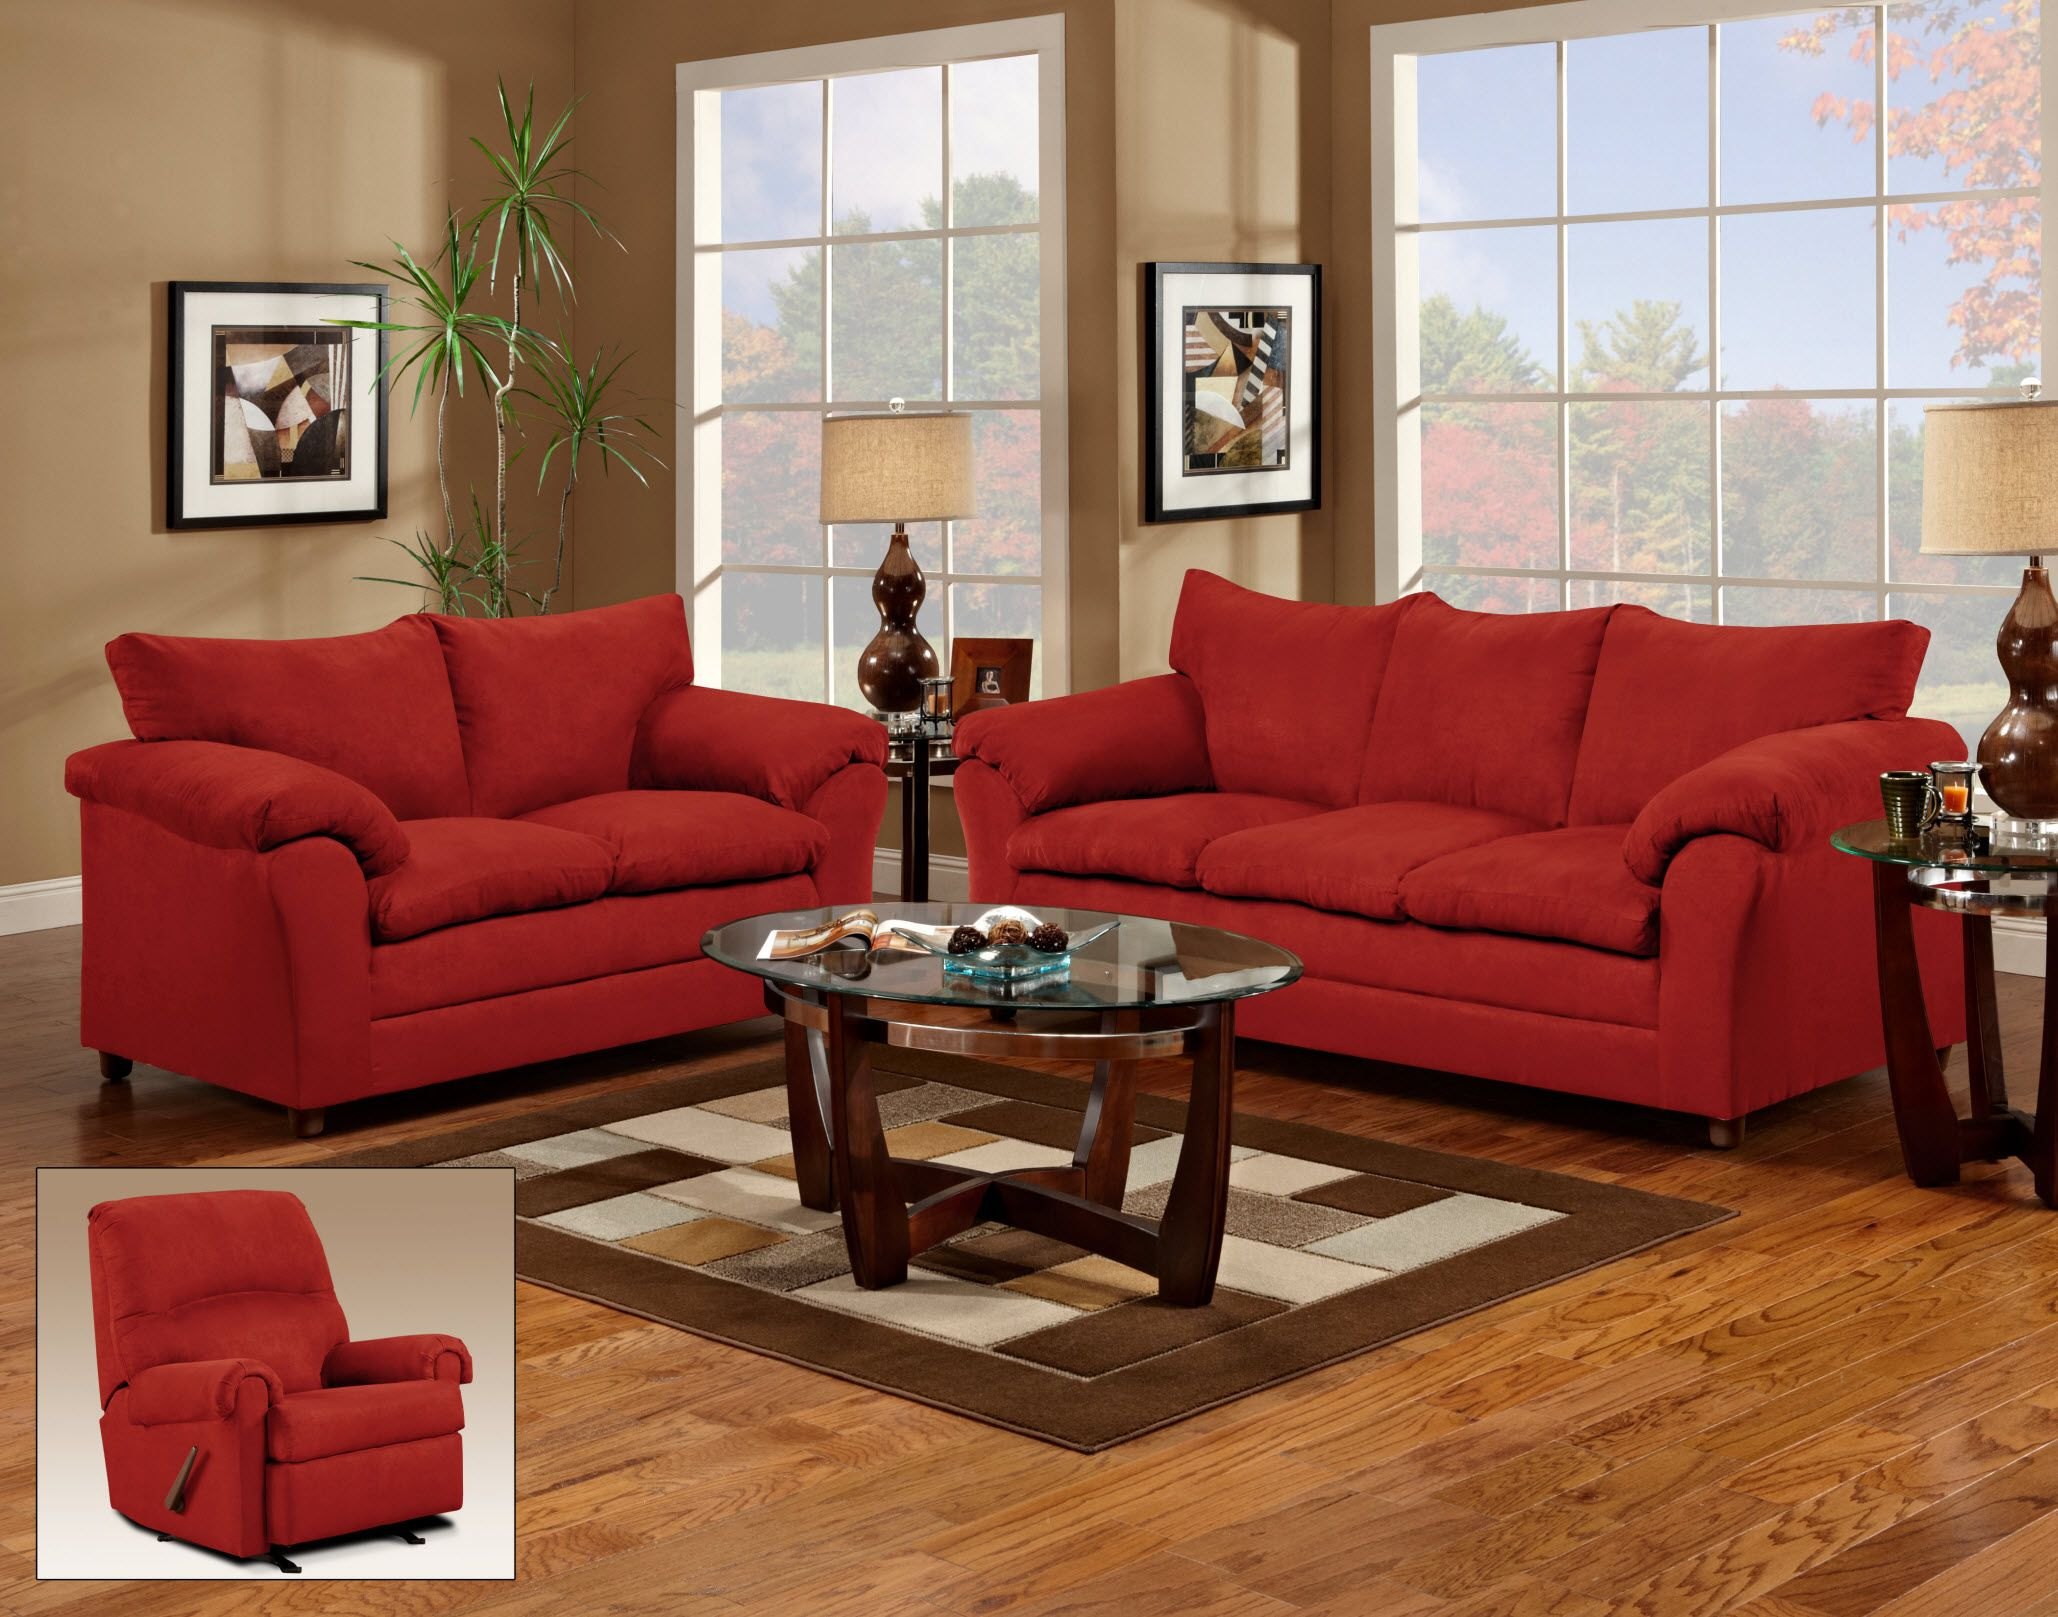 Living Room Decorating Ideas Red Sofa best 25+ couch and loveseat ideas on pinterest | round swivel